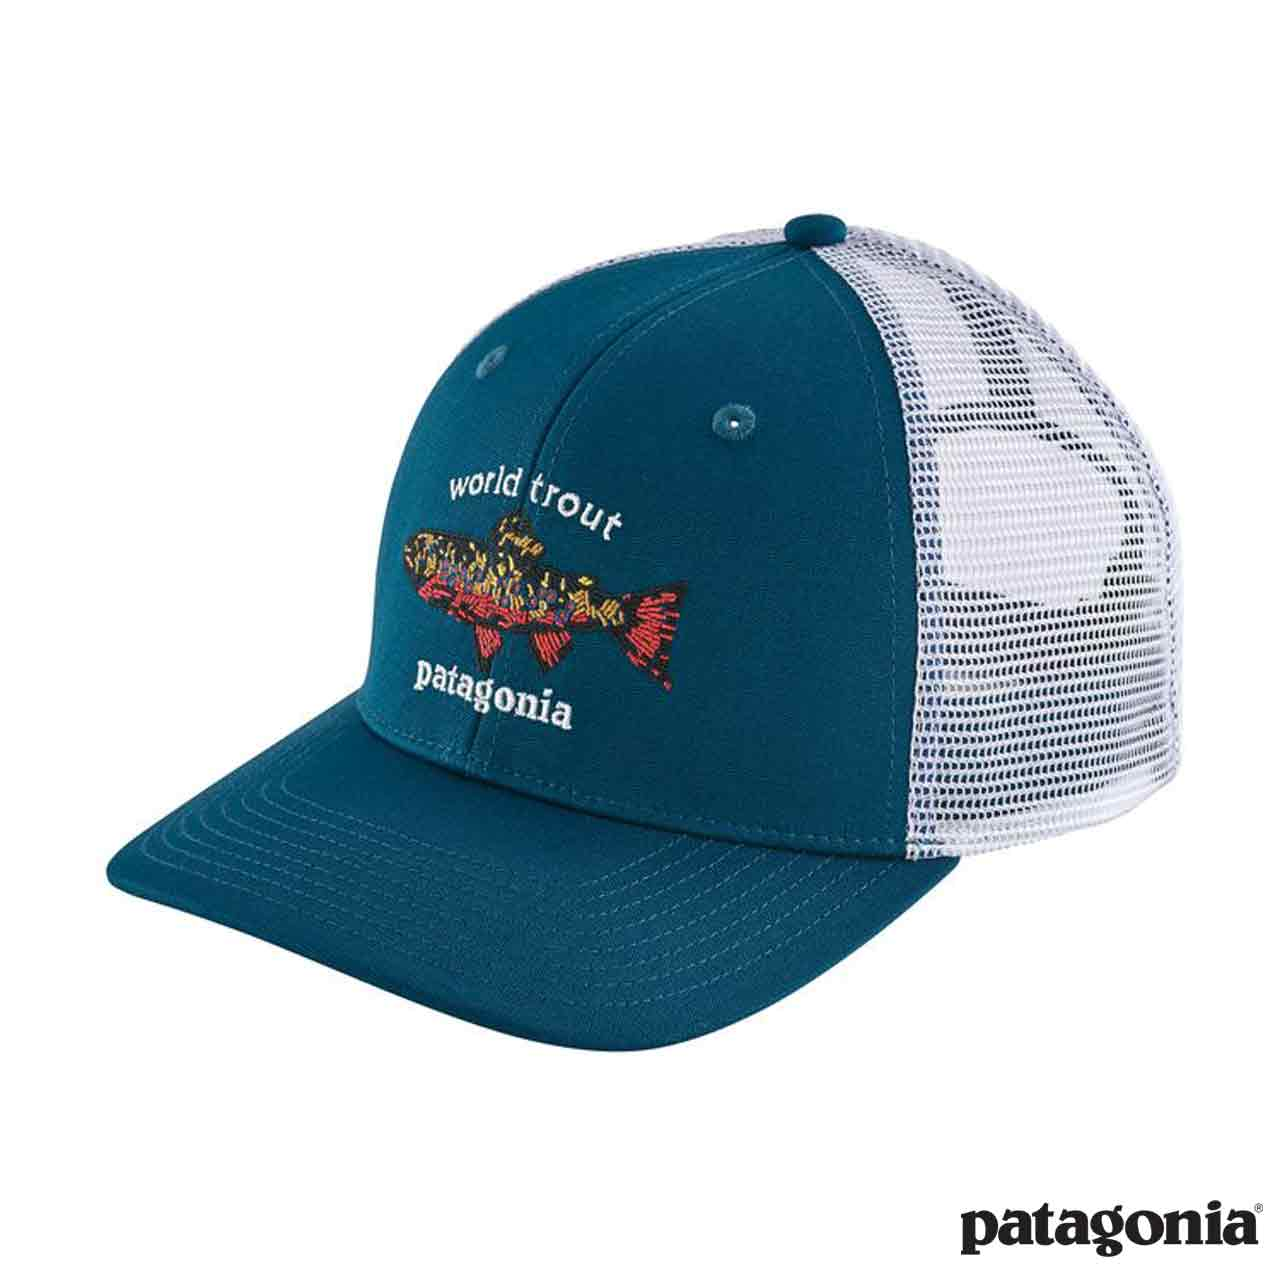 patagonia cappello  Cappello World Trout Brook Trucker - Patagonia - Like a River